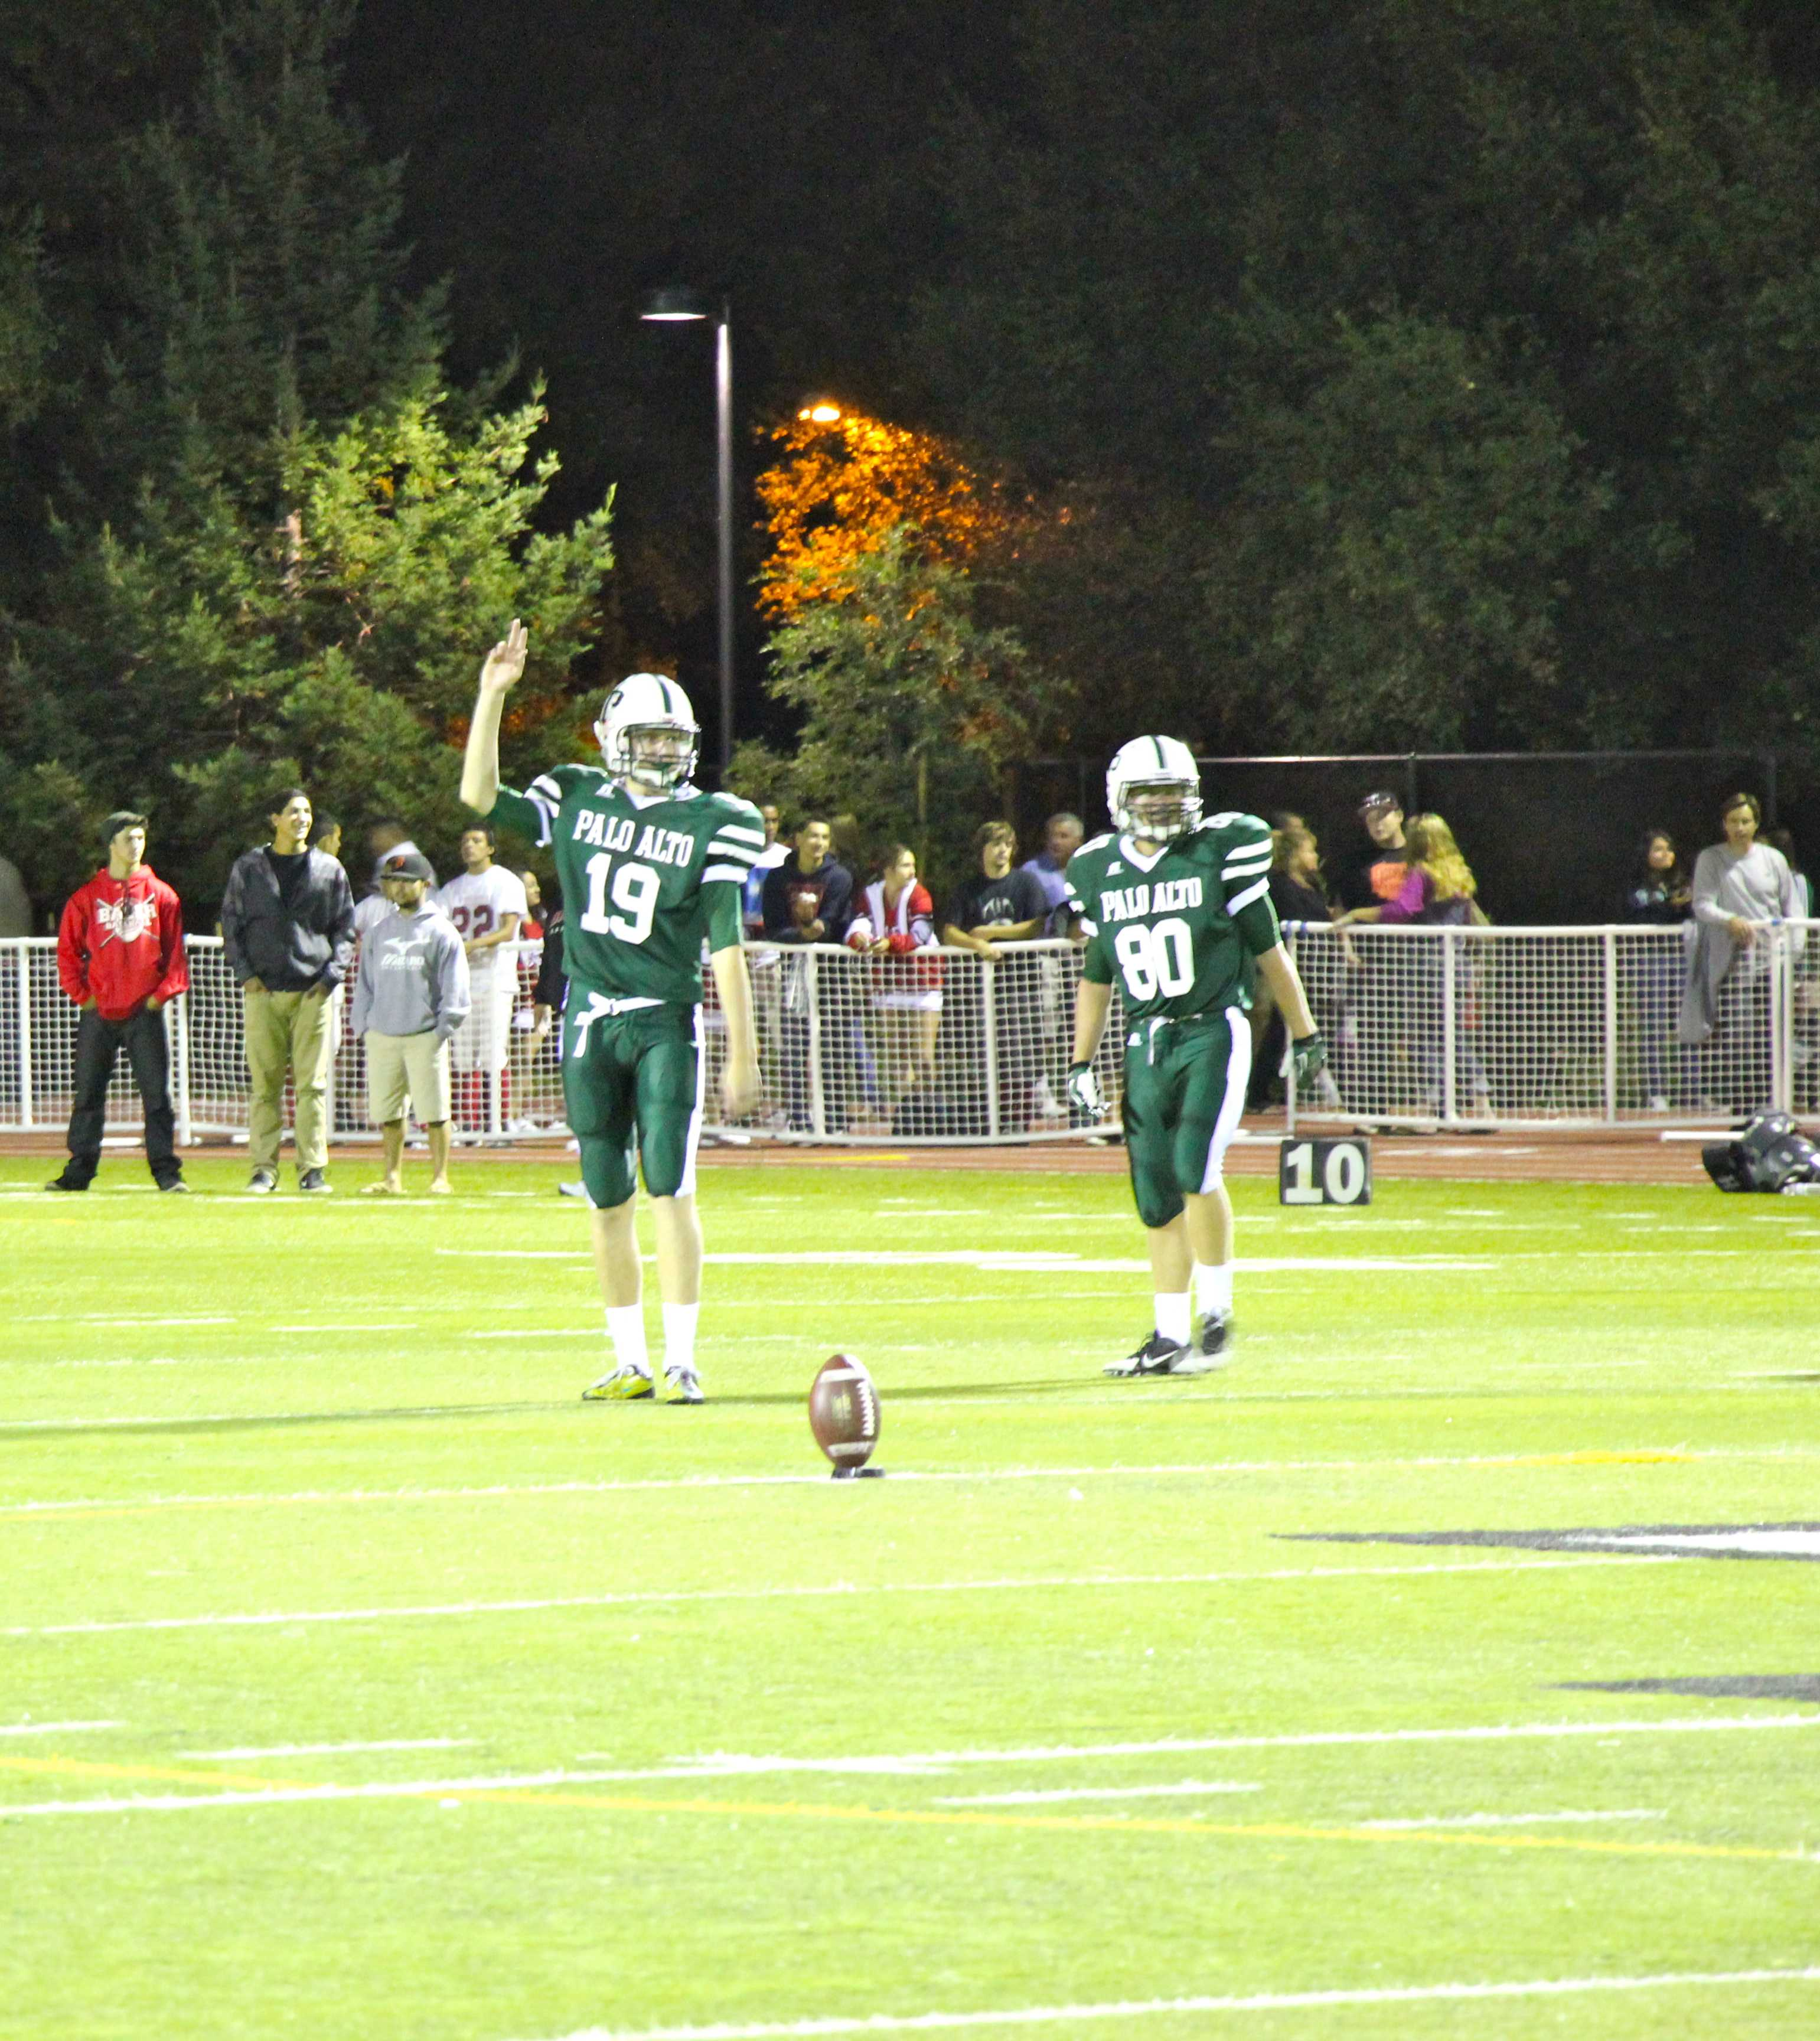 Senior kicker Matthew Fogarty lines up for the kickoff after halftime. Photo by Scott Andrews